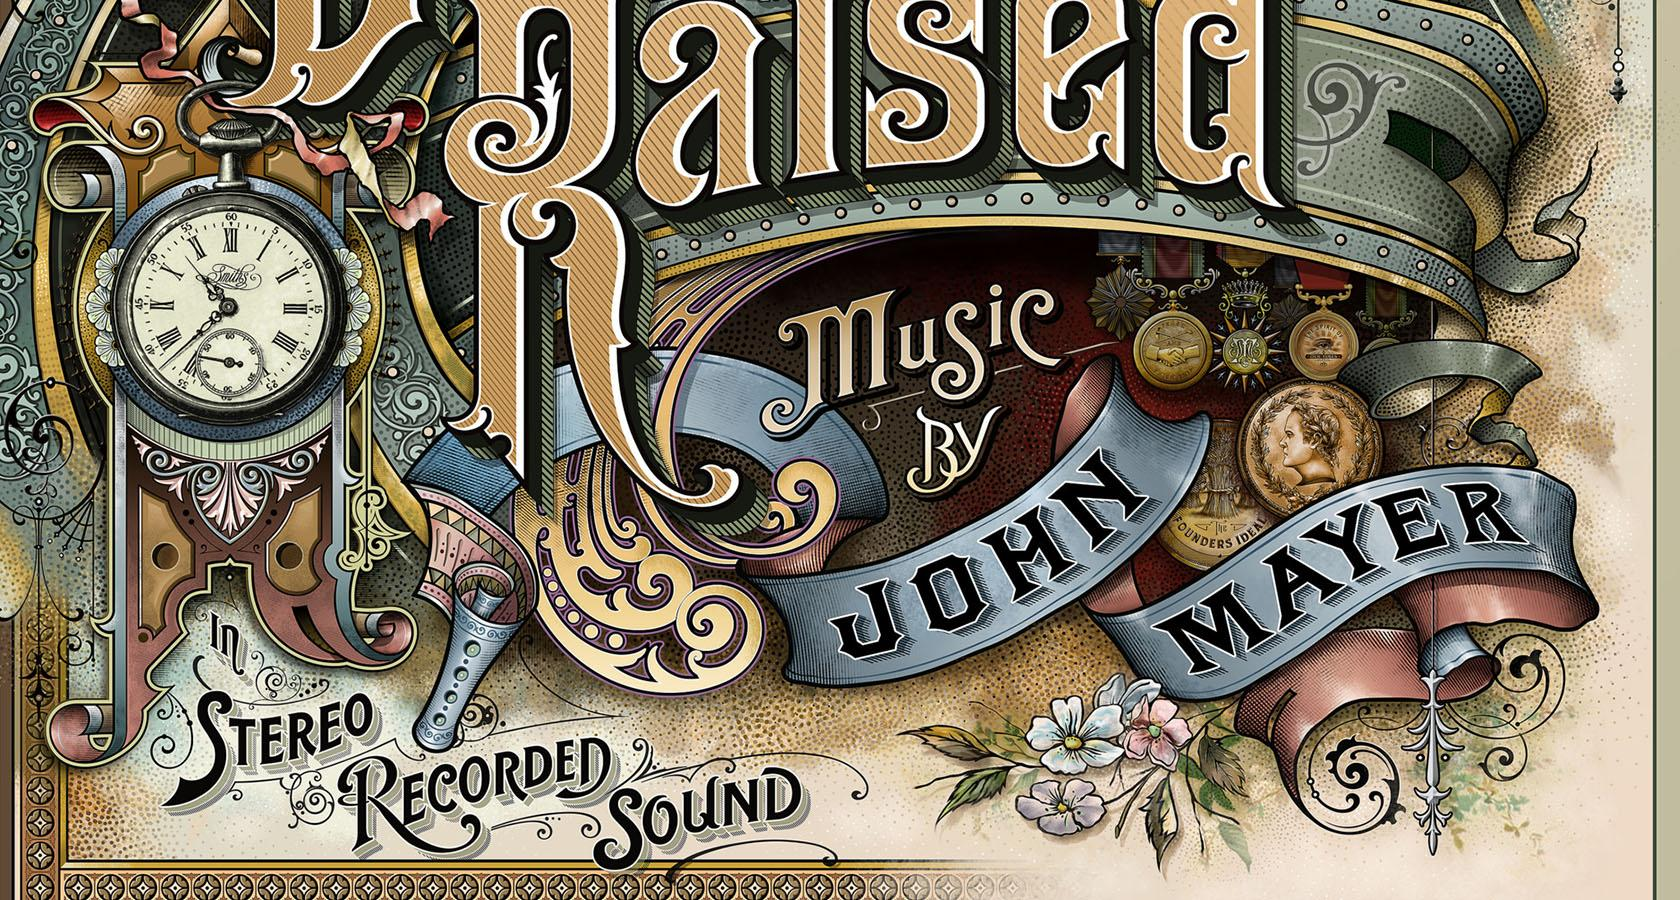 david smith hand lettering album cover john mayer